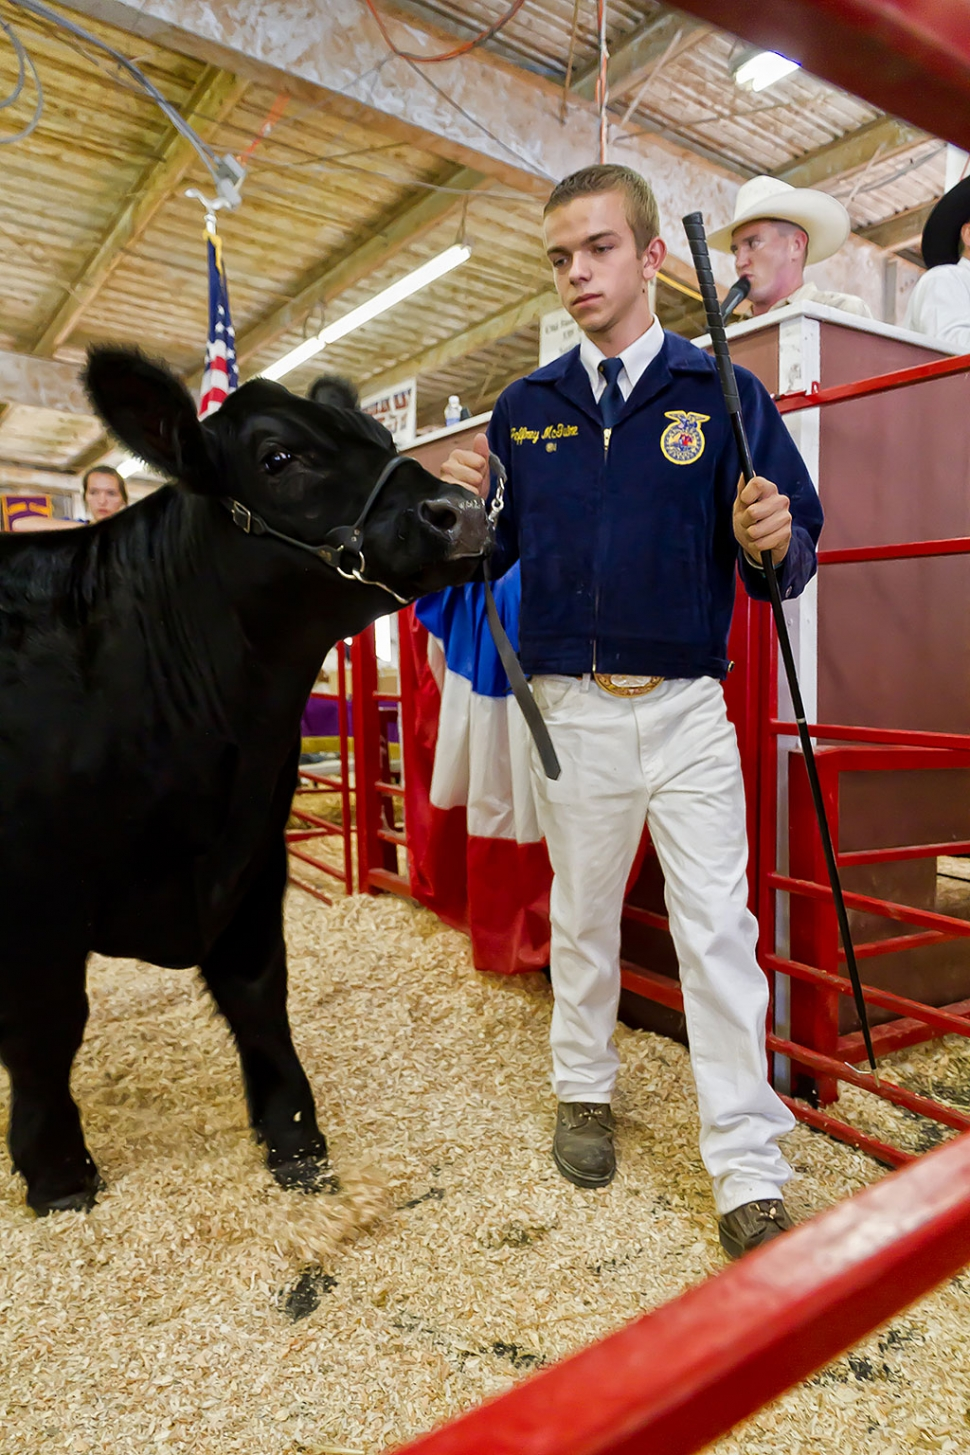 Jeffrey McGuire, 16, Fillmore FFA, raised a 1,345 lb. market steer that was awarded FFA Reserve Grand Champion.